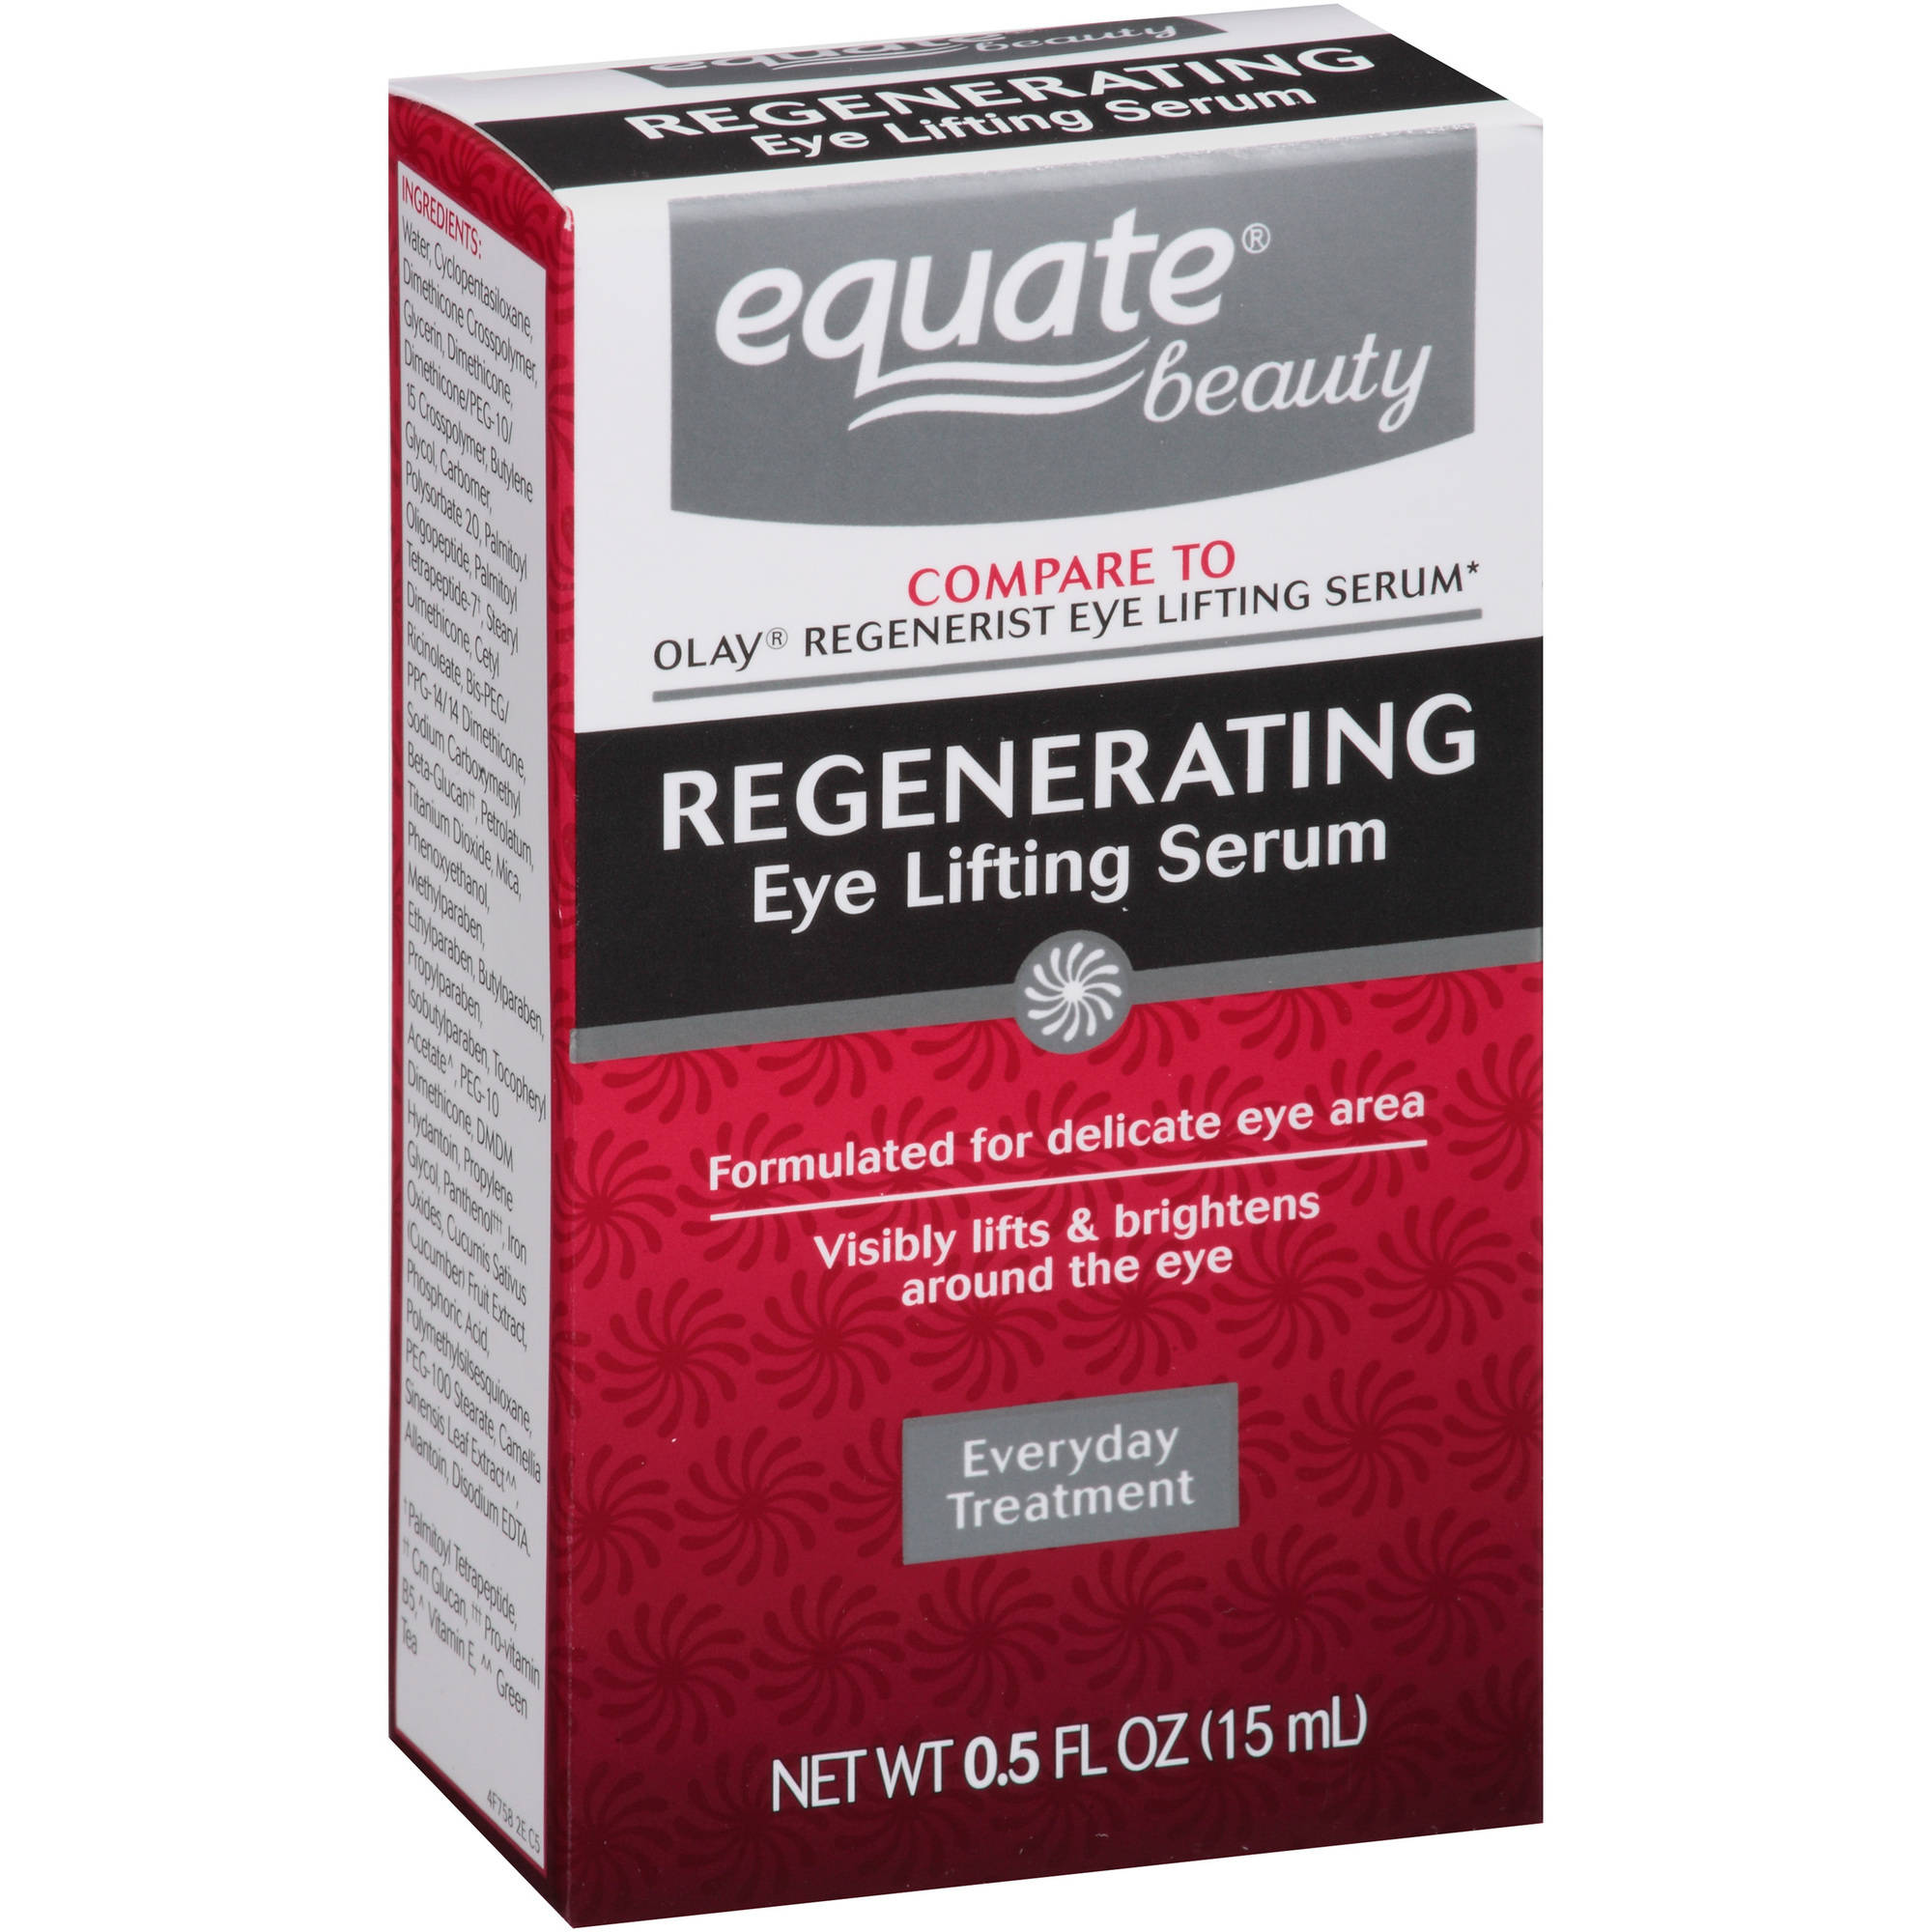 Equate Beauty Regenerating Eye Lifting Serum, 0.5 fl oz